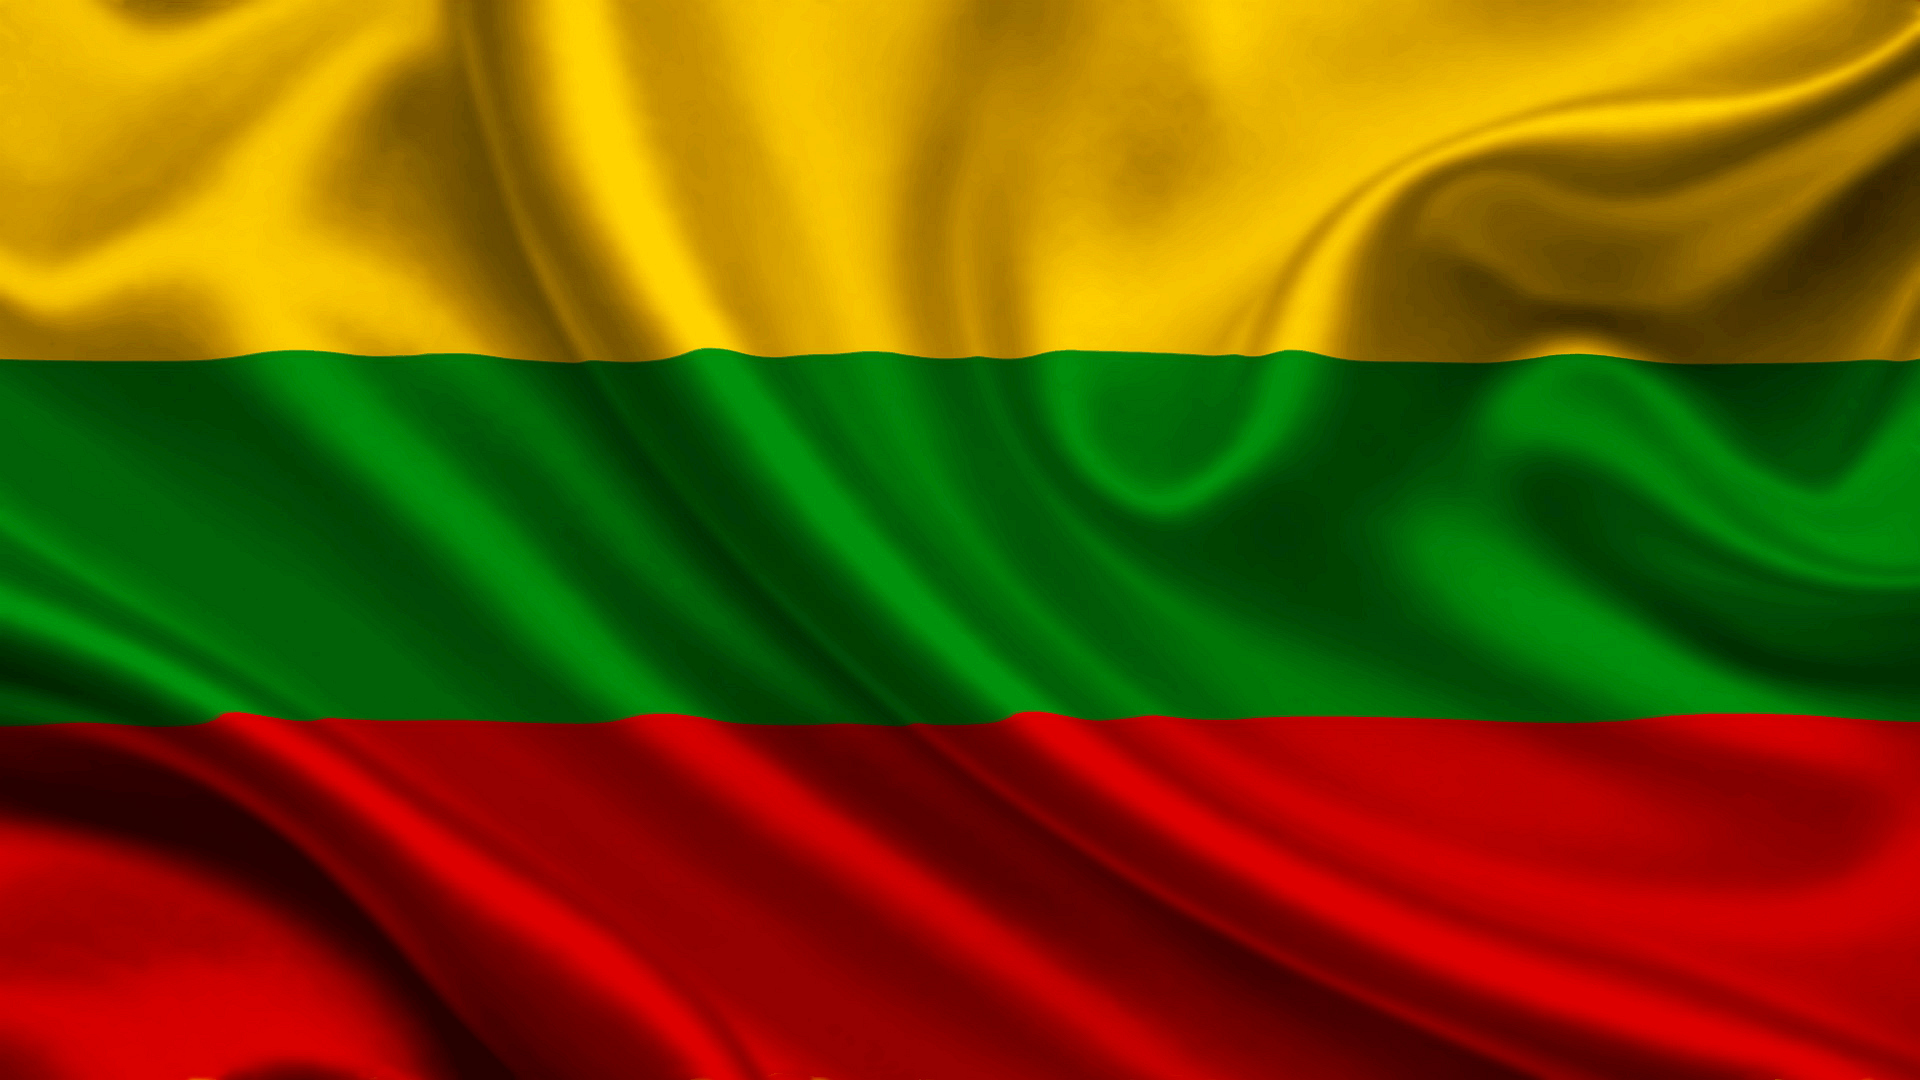 The flag of Lithuania (pro100travel.ru)